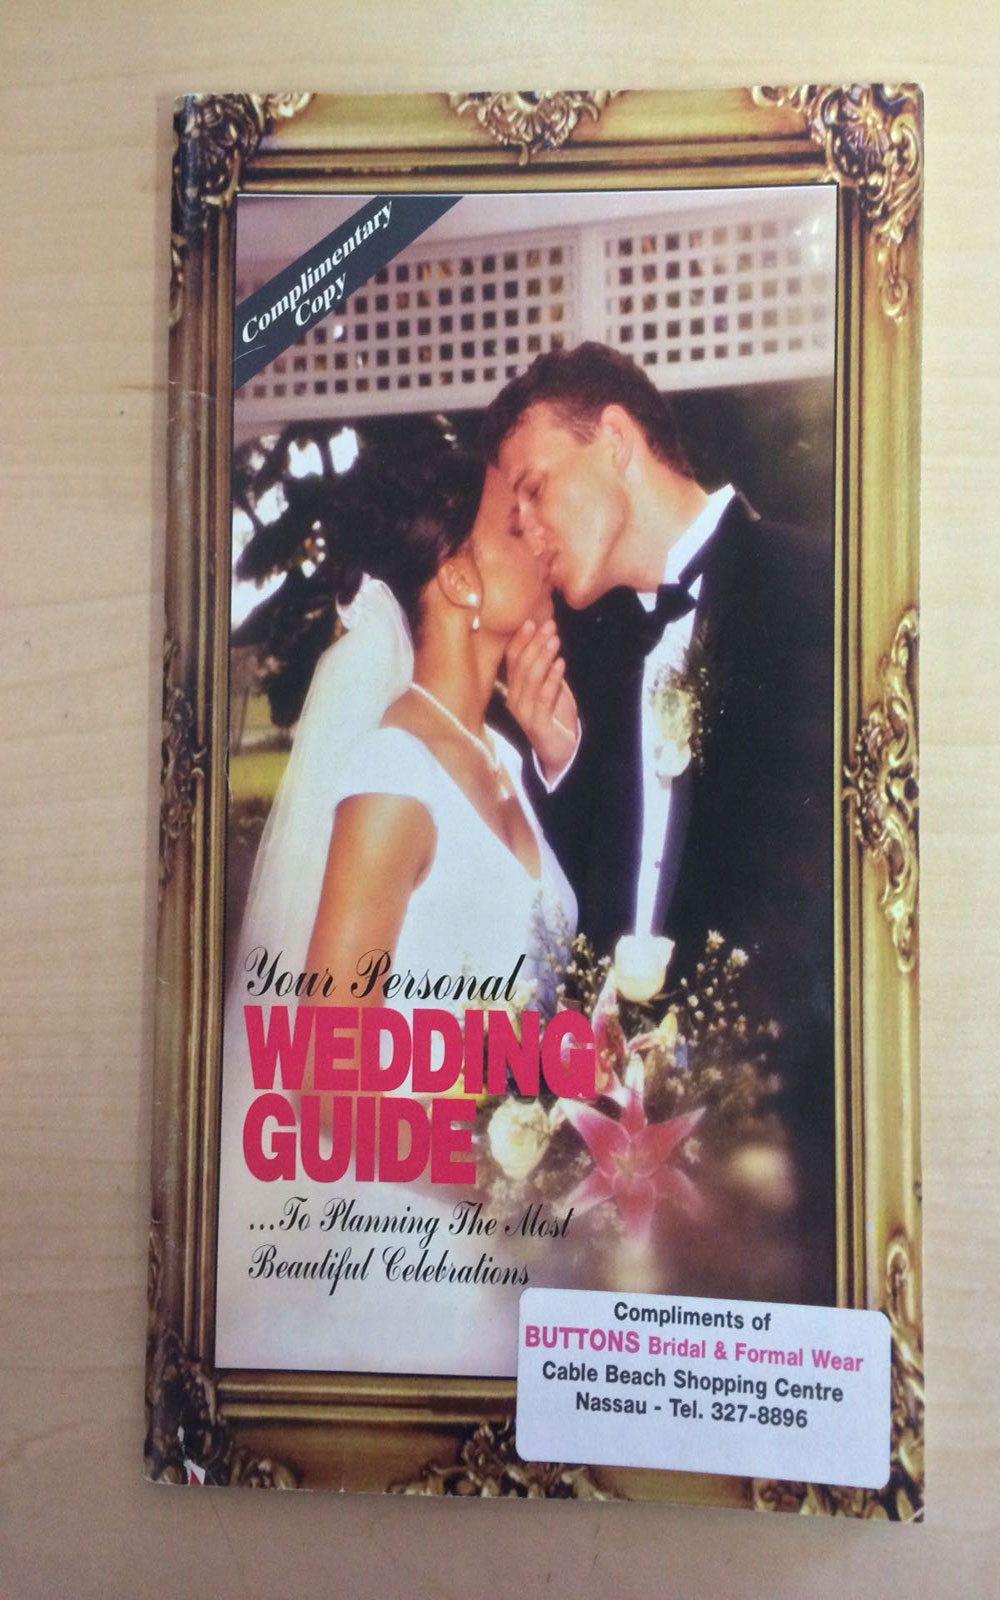 The Wedding Guide 1998